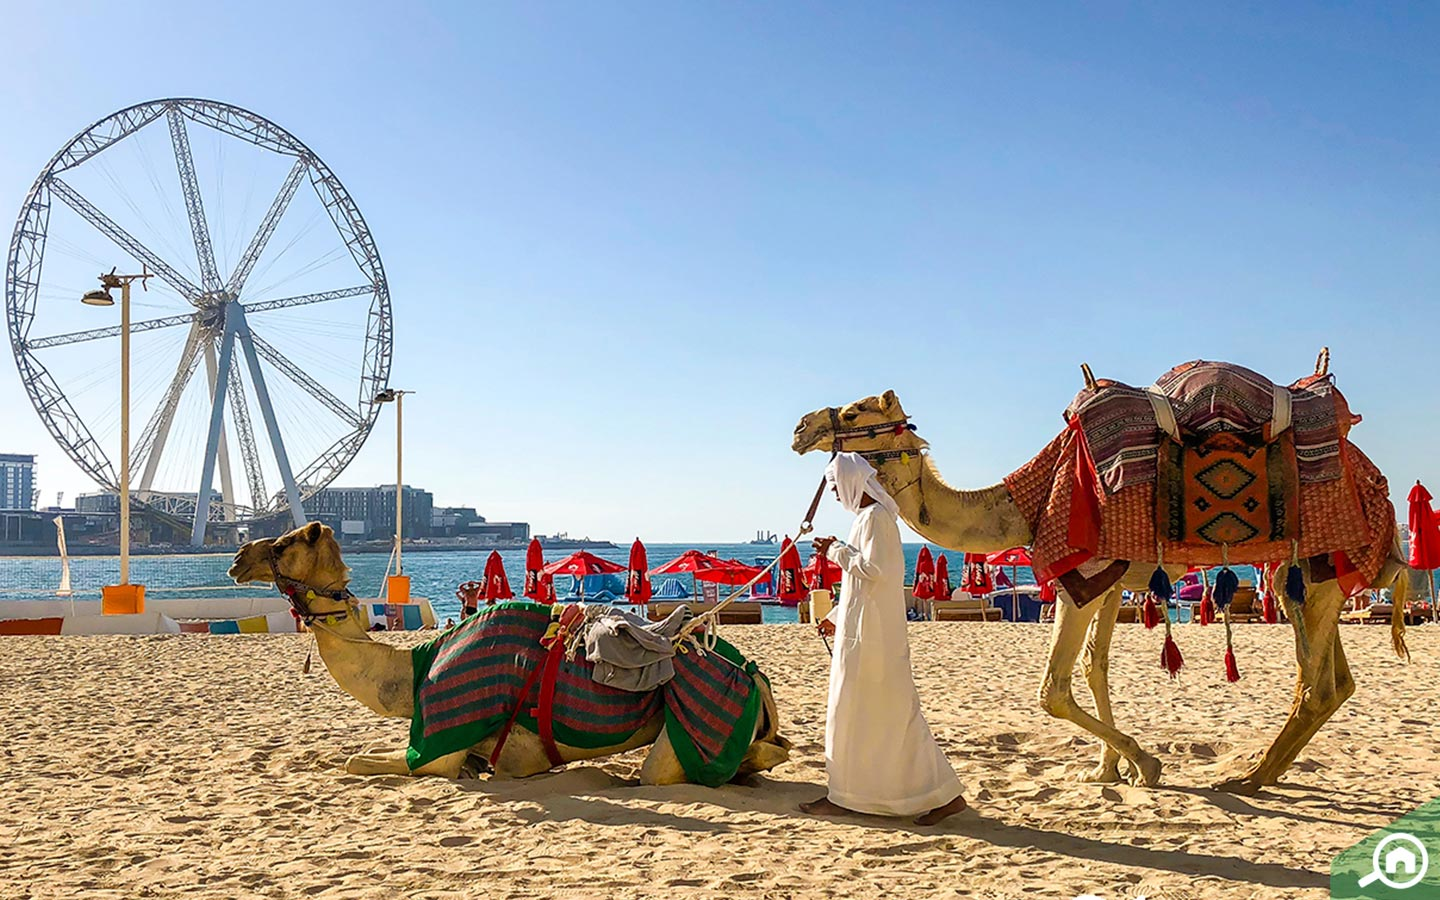 View of camels at JBR Public Beach with Ain Dubai in the background